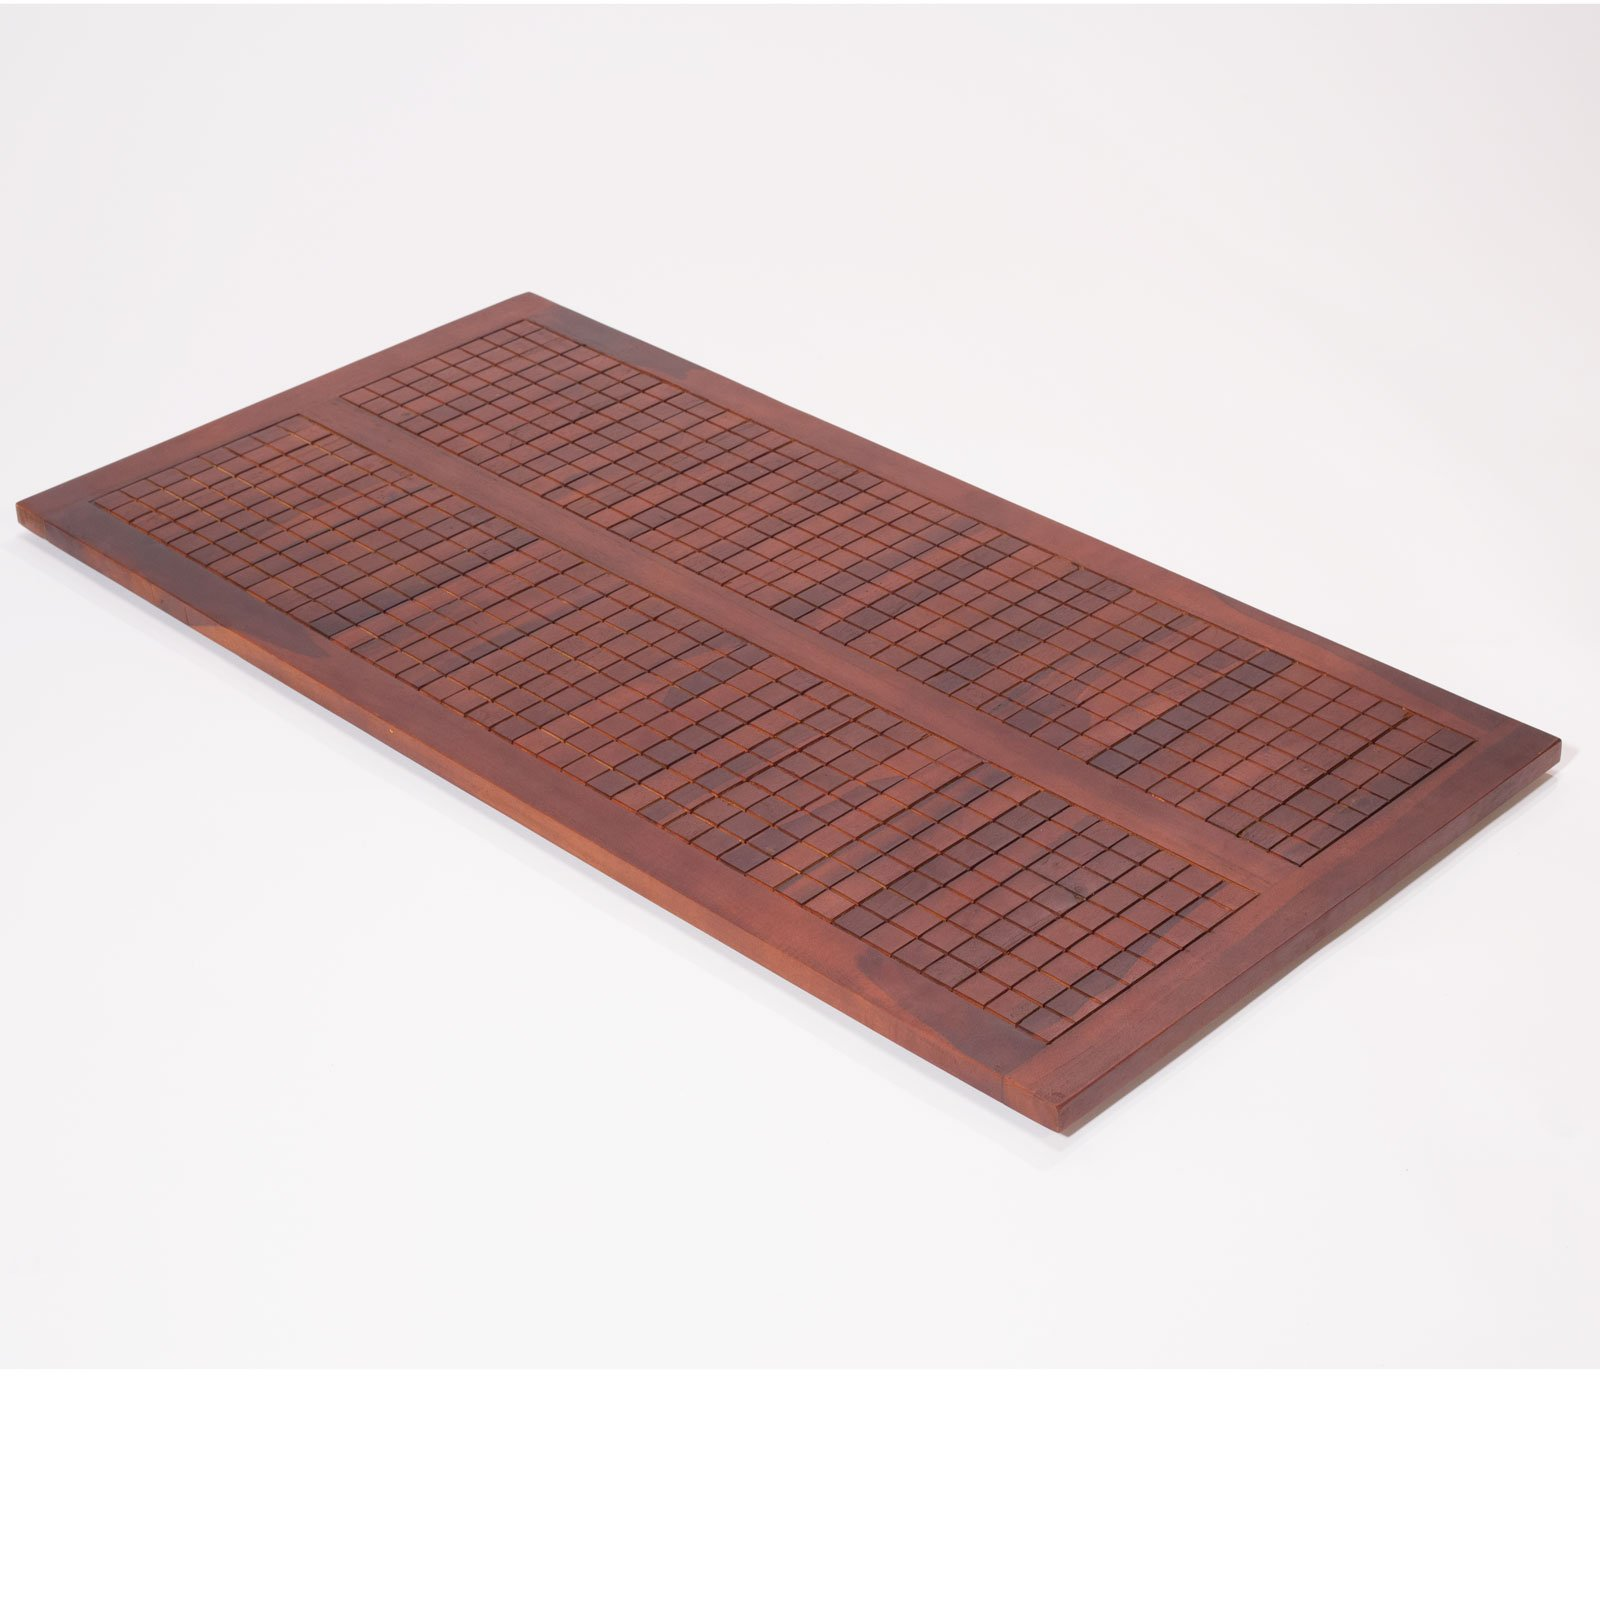 40'' X 20'' Non Slip Teak Shower Floor Bath Bathroom Mat by Decoteak (Image #3)